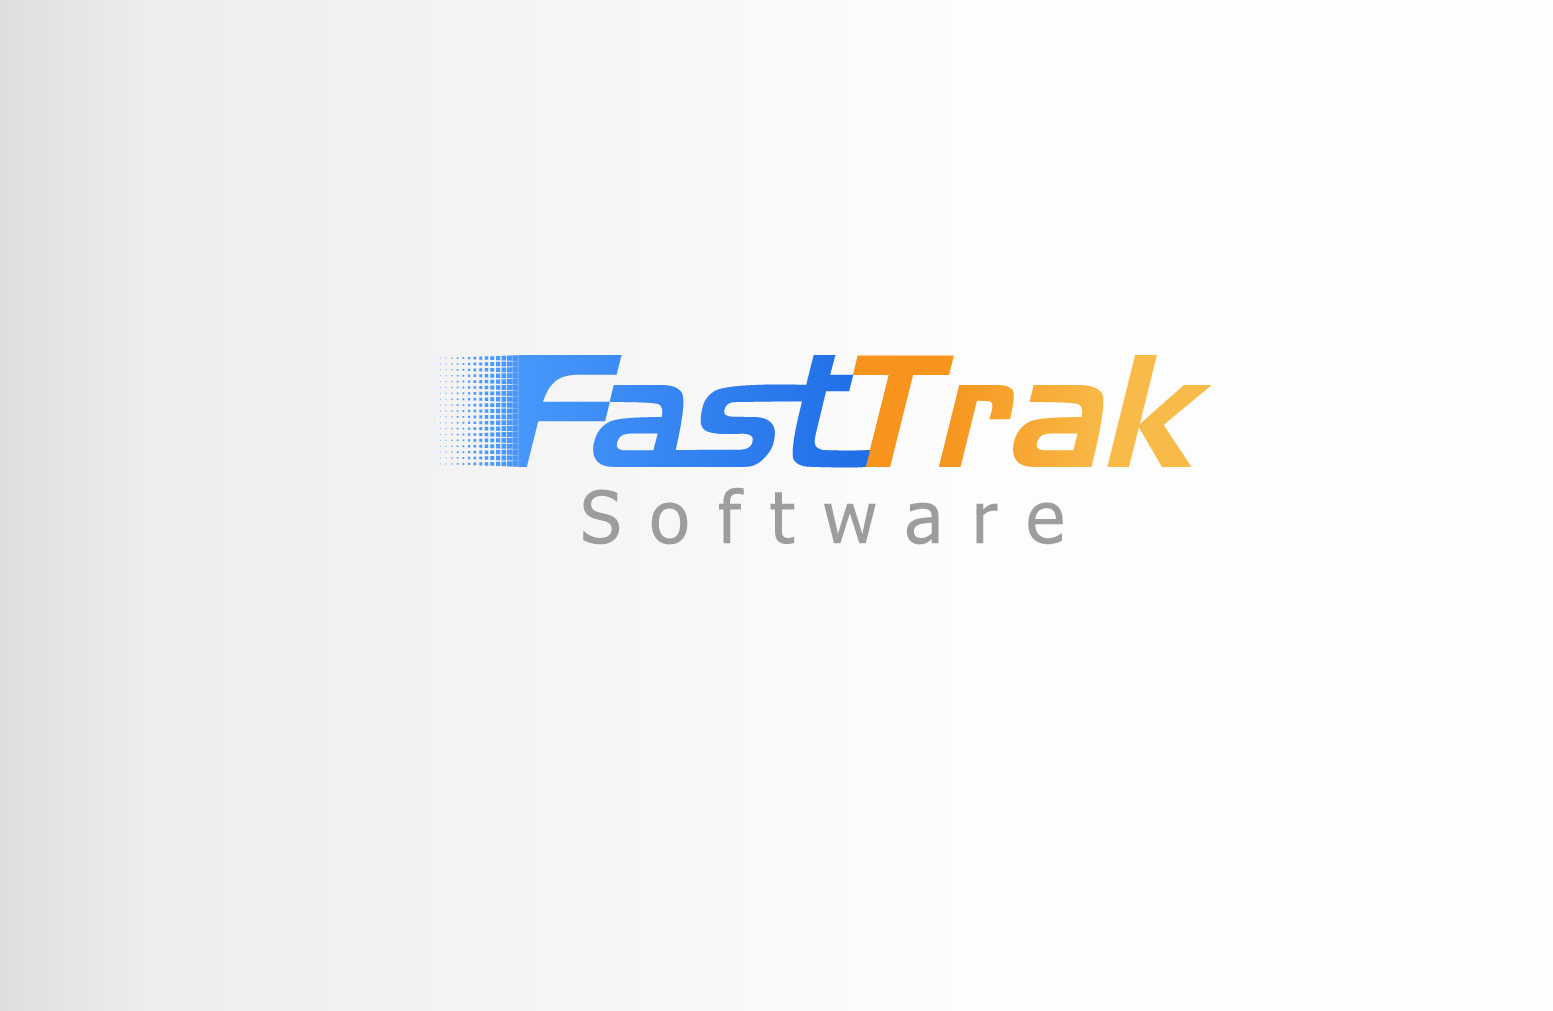 Logo Design by Indra Kurnia - Entry No. 30 in the Logo Design Contest Fast Trak Software Logo Design.